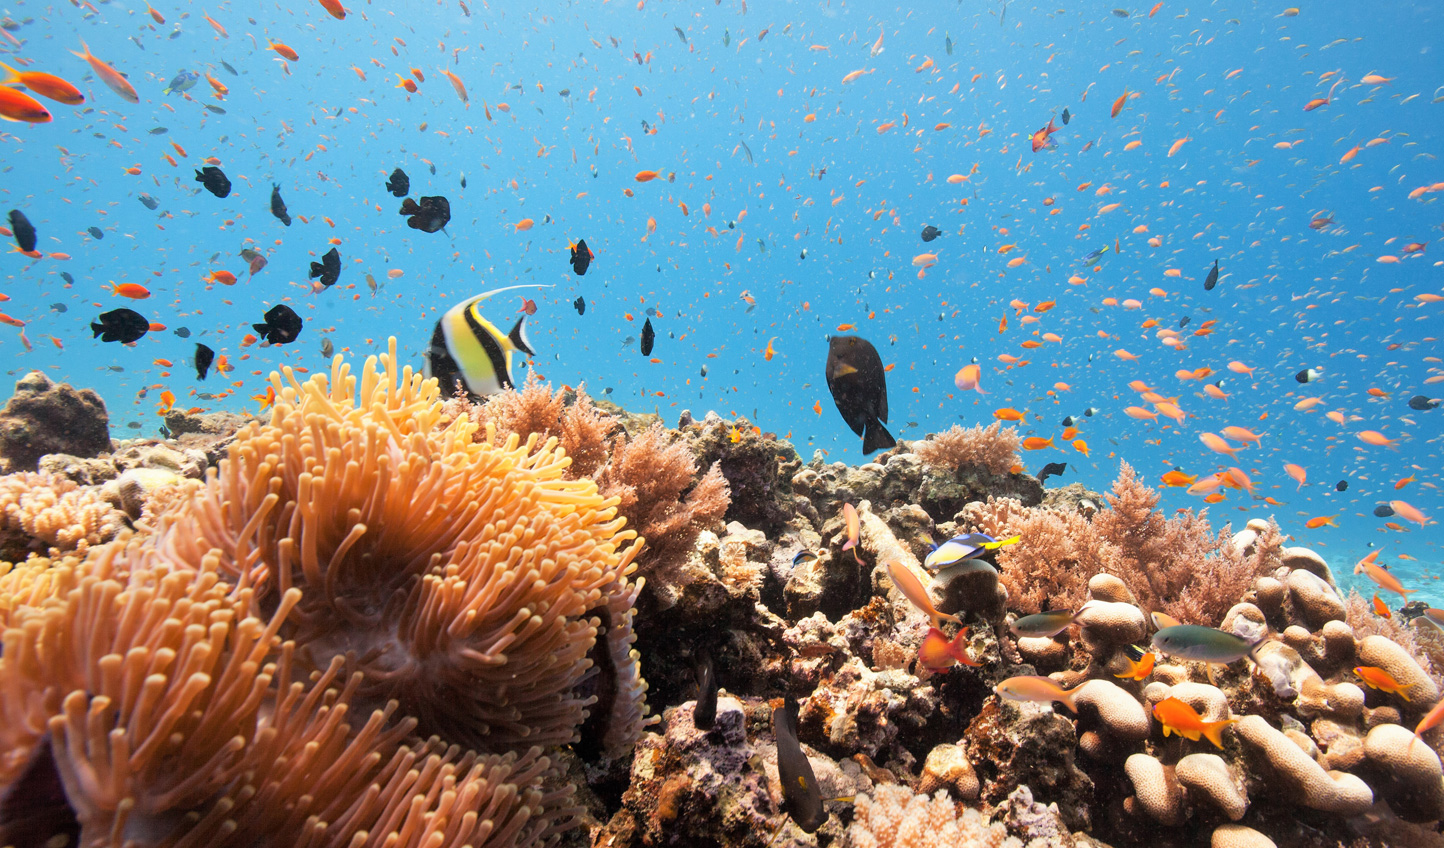 Dive into a world of colour amongst the vibrant reefs surrounding the island